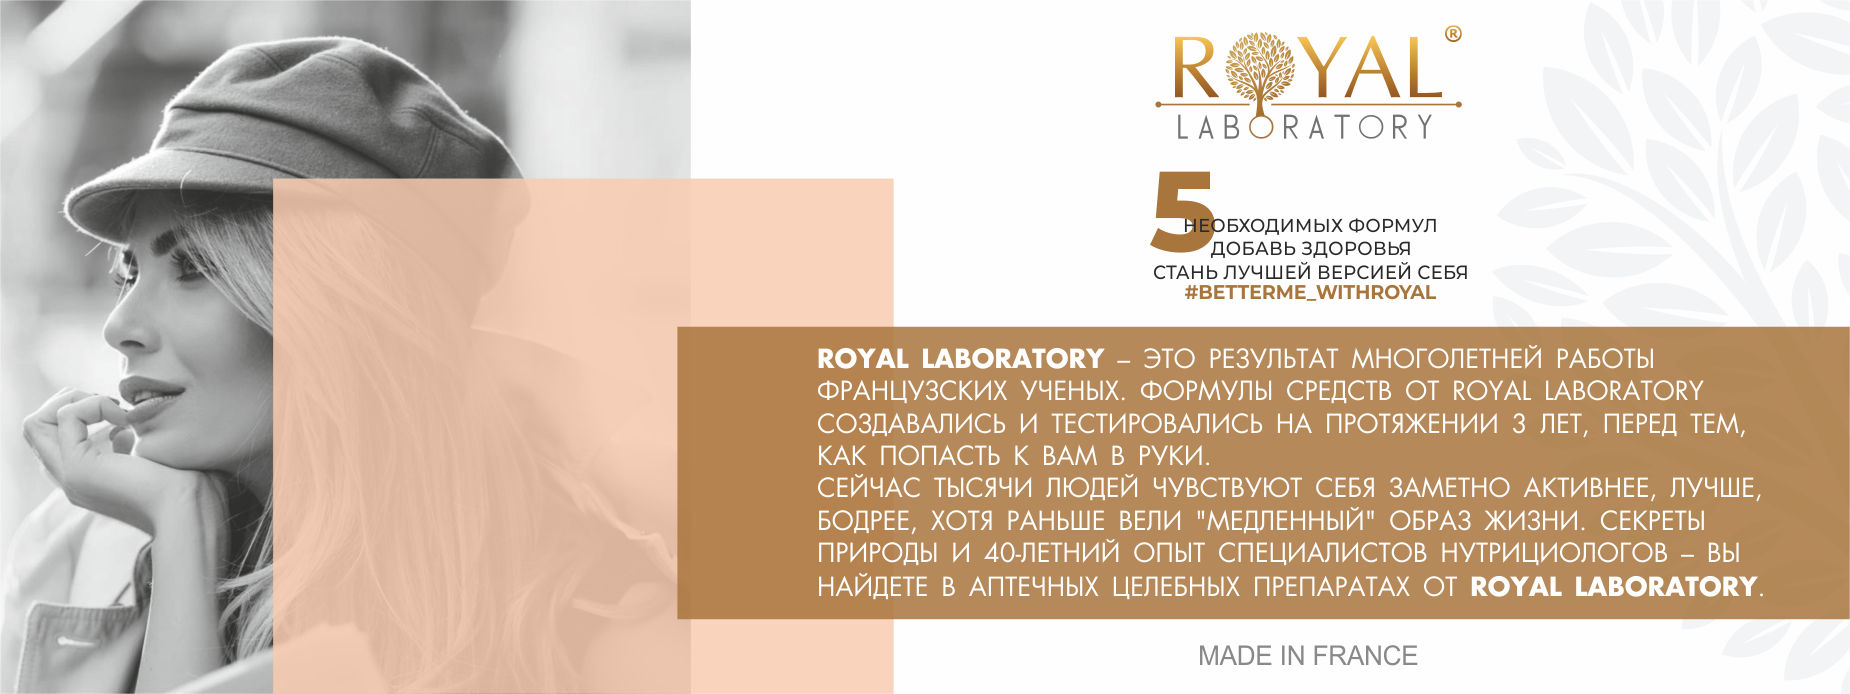 Royal Laboratory